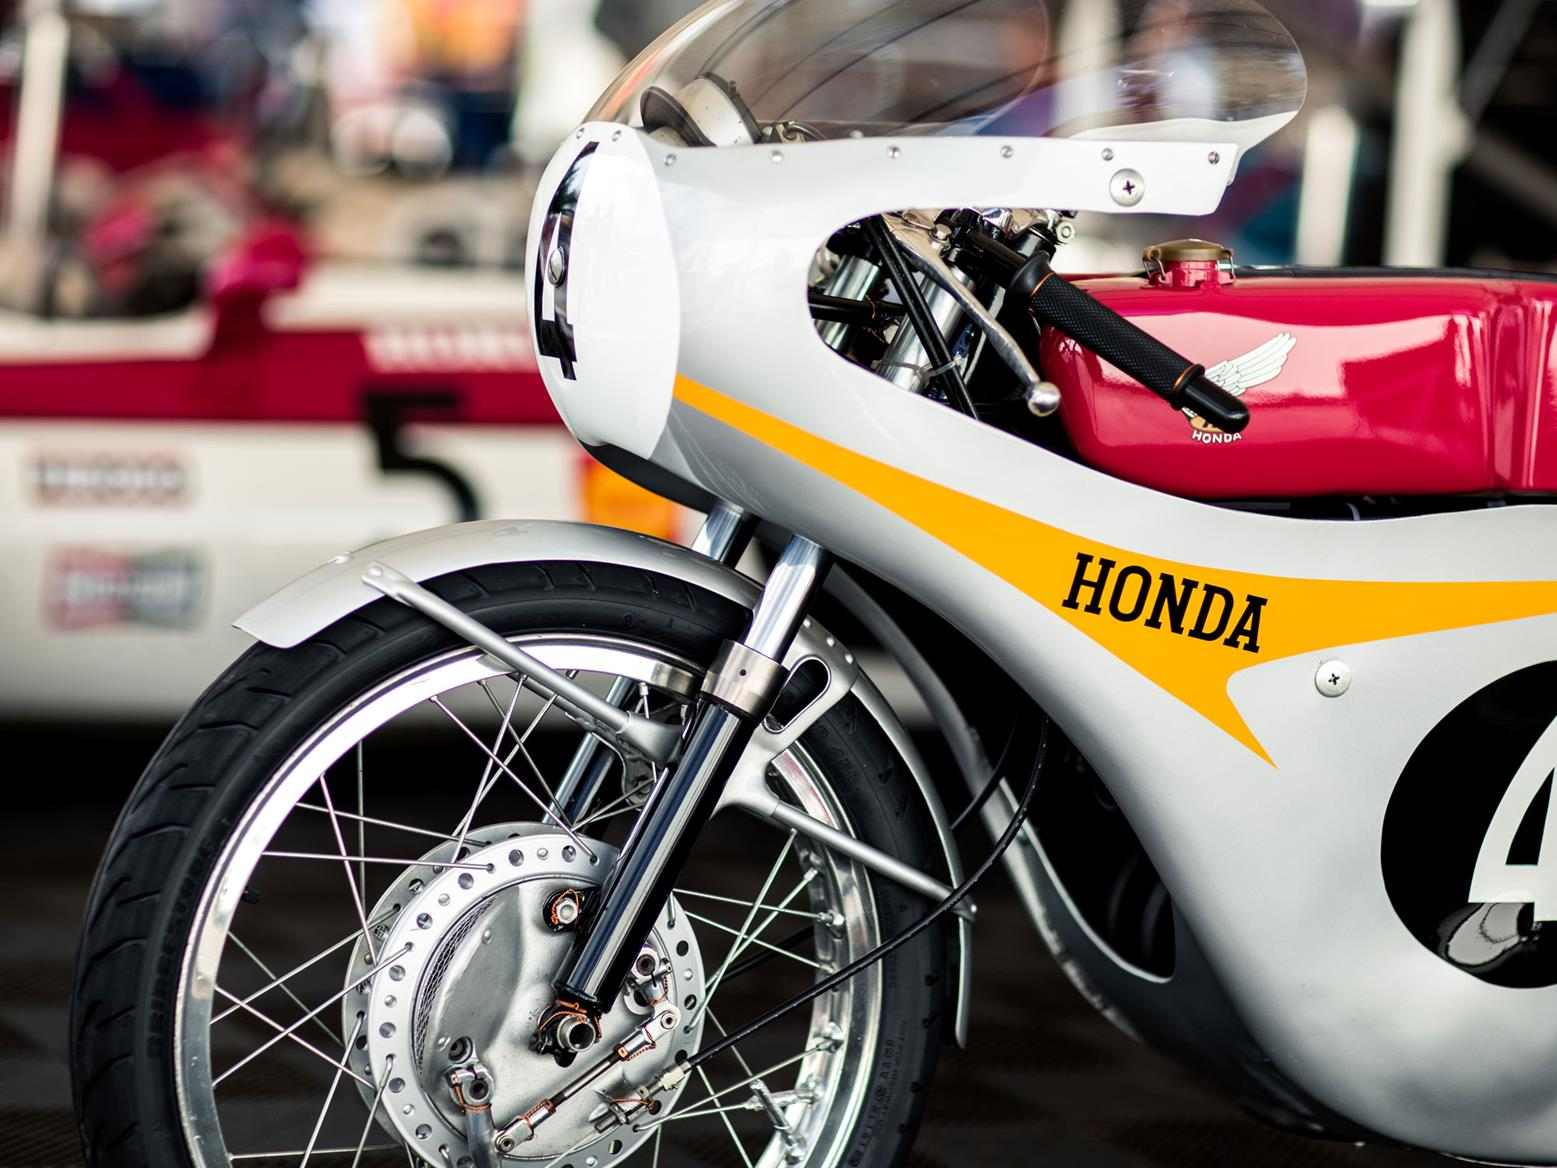 Honda race bike at the Goodwood Festival of Speed. Image credit: Stephanie O' Callaghan/Goodwood